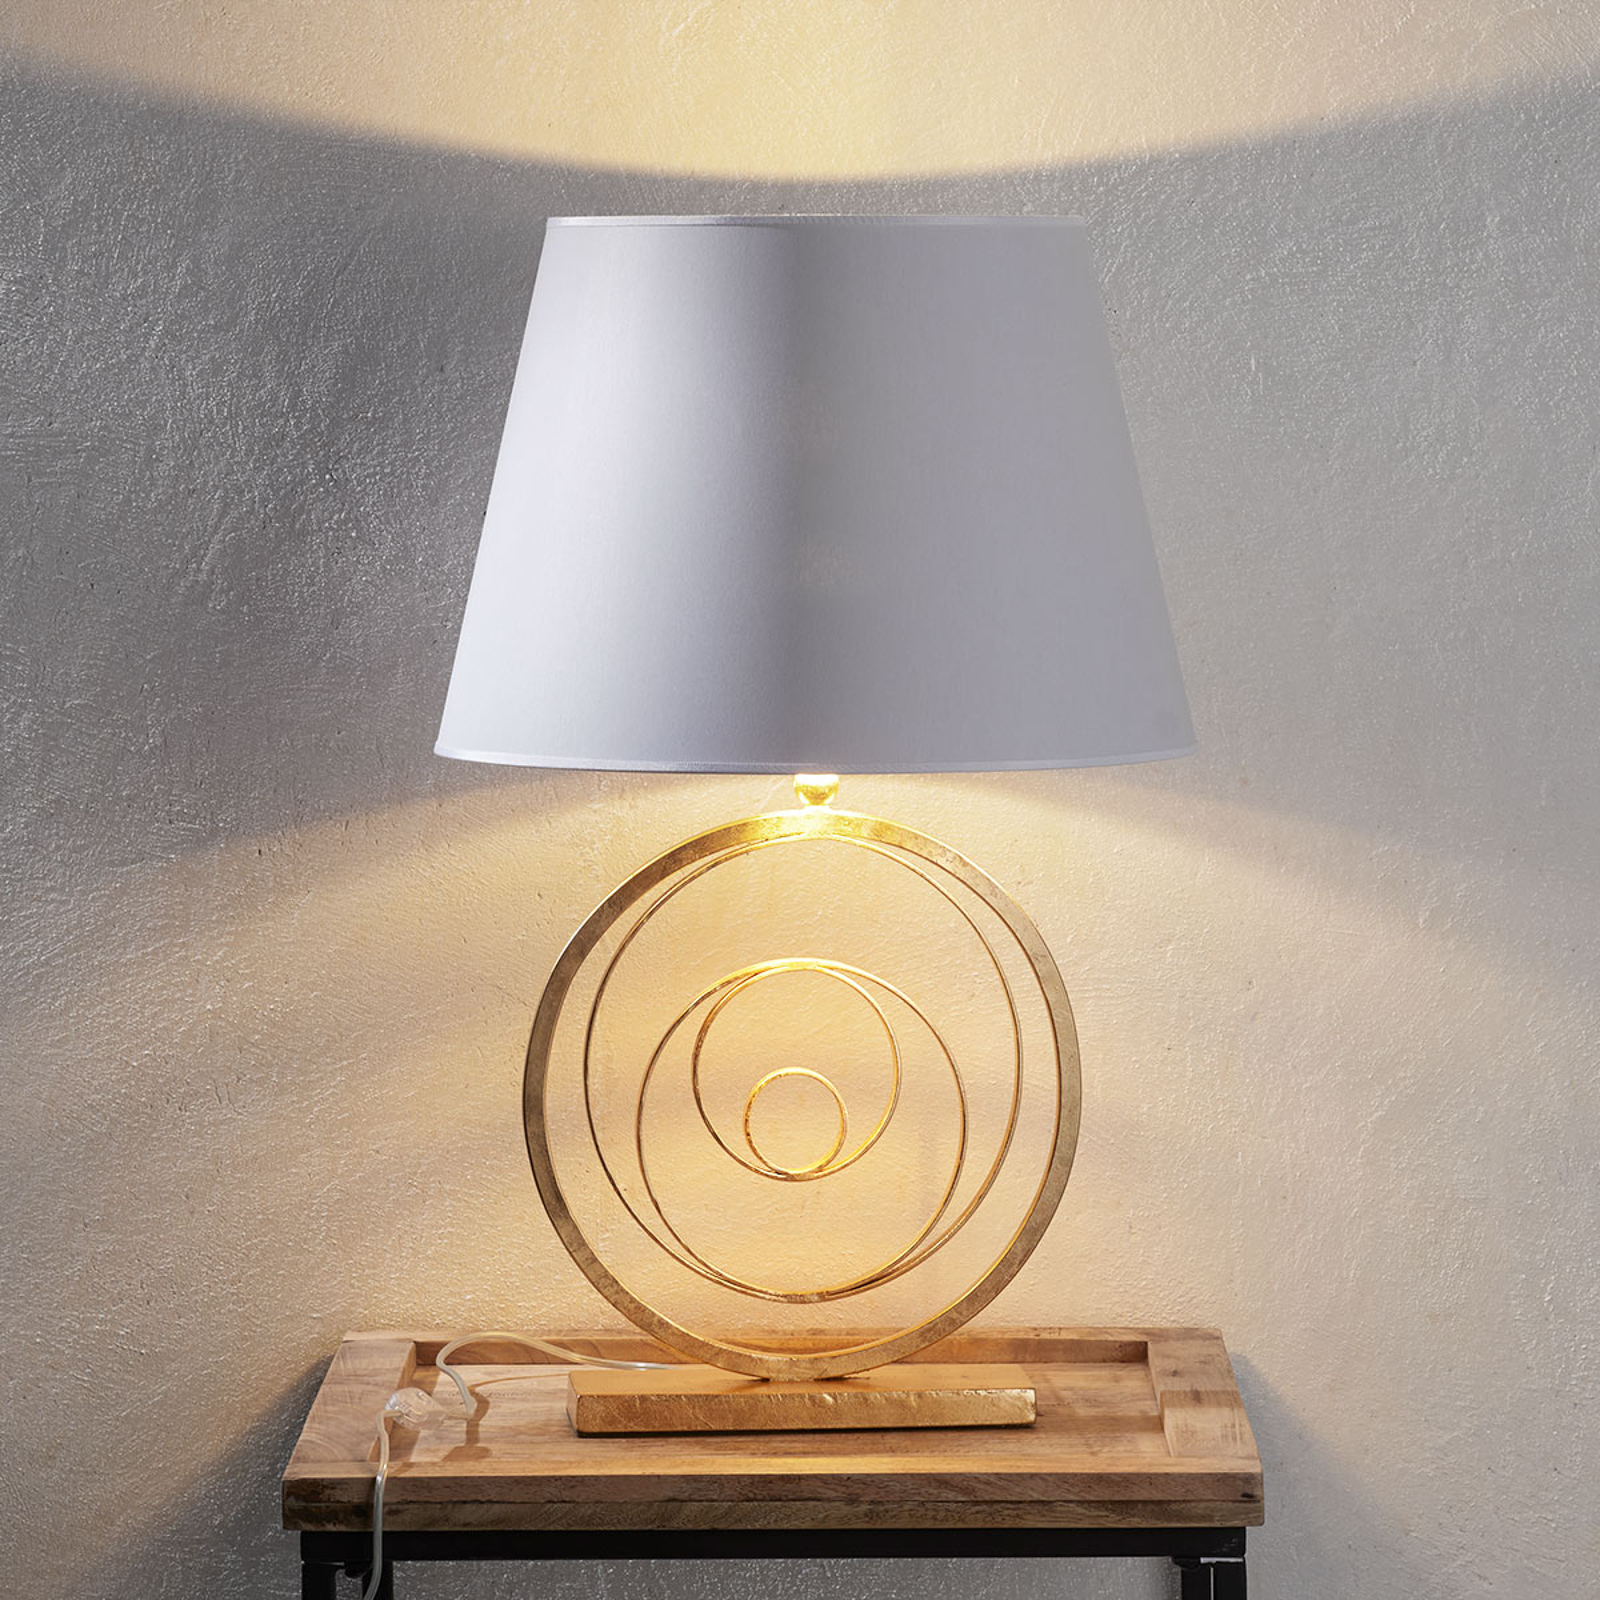 Ring noble table light with golden base_3532131_1